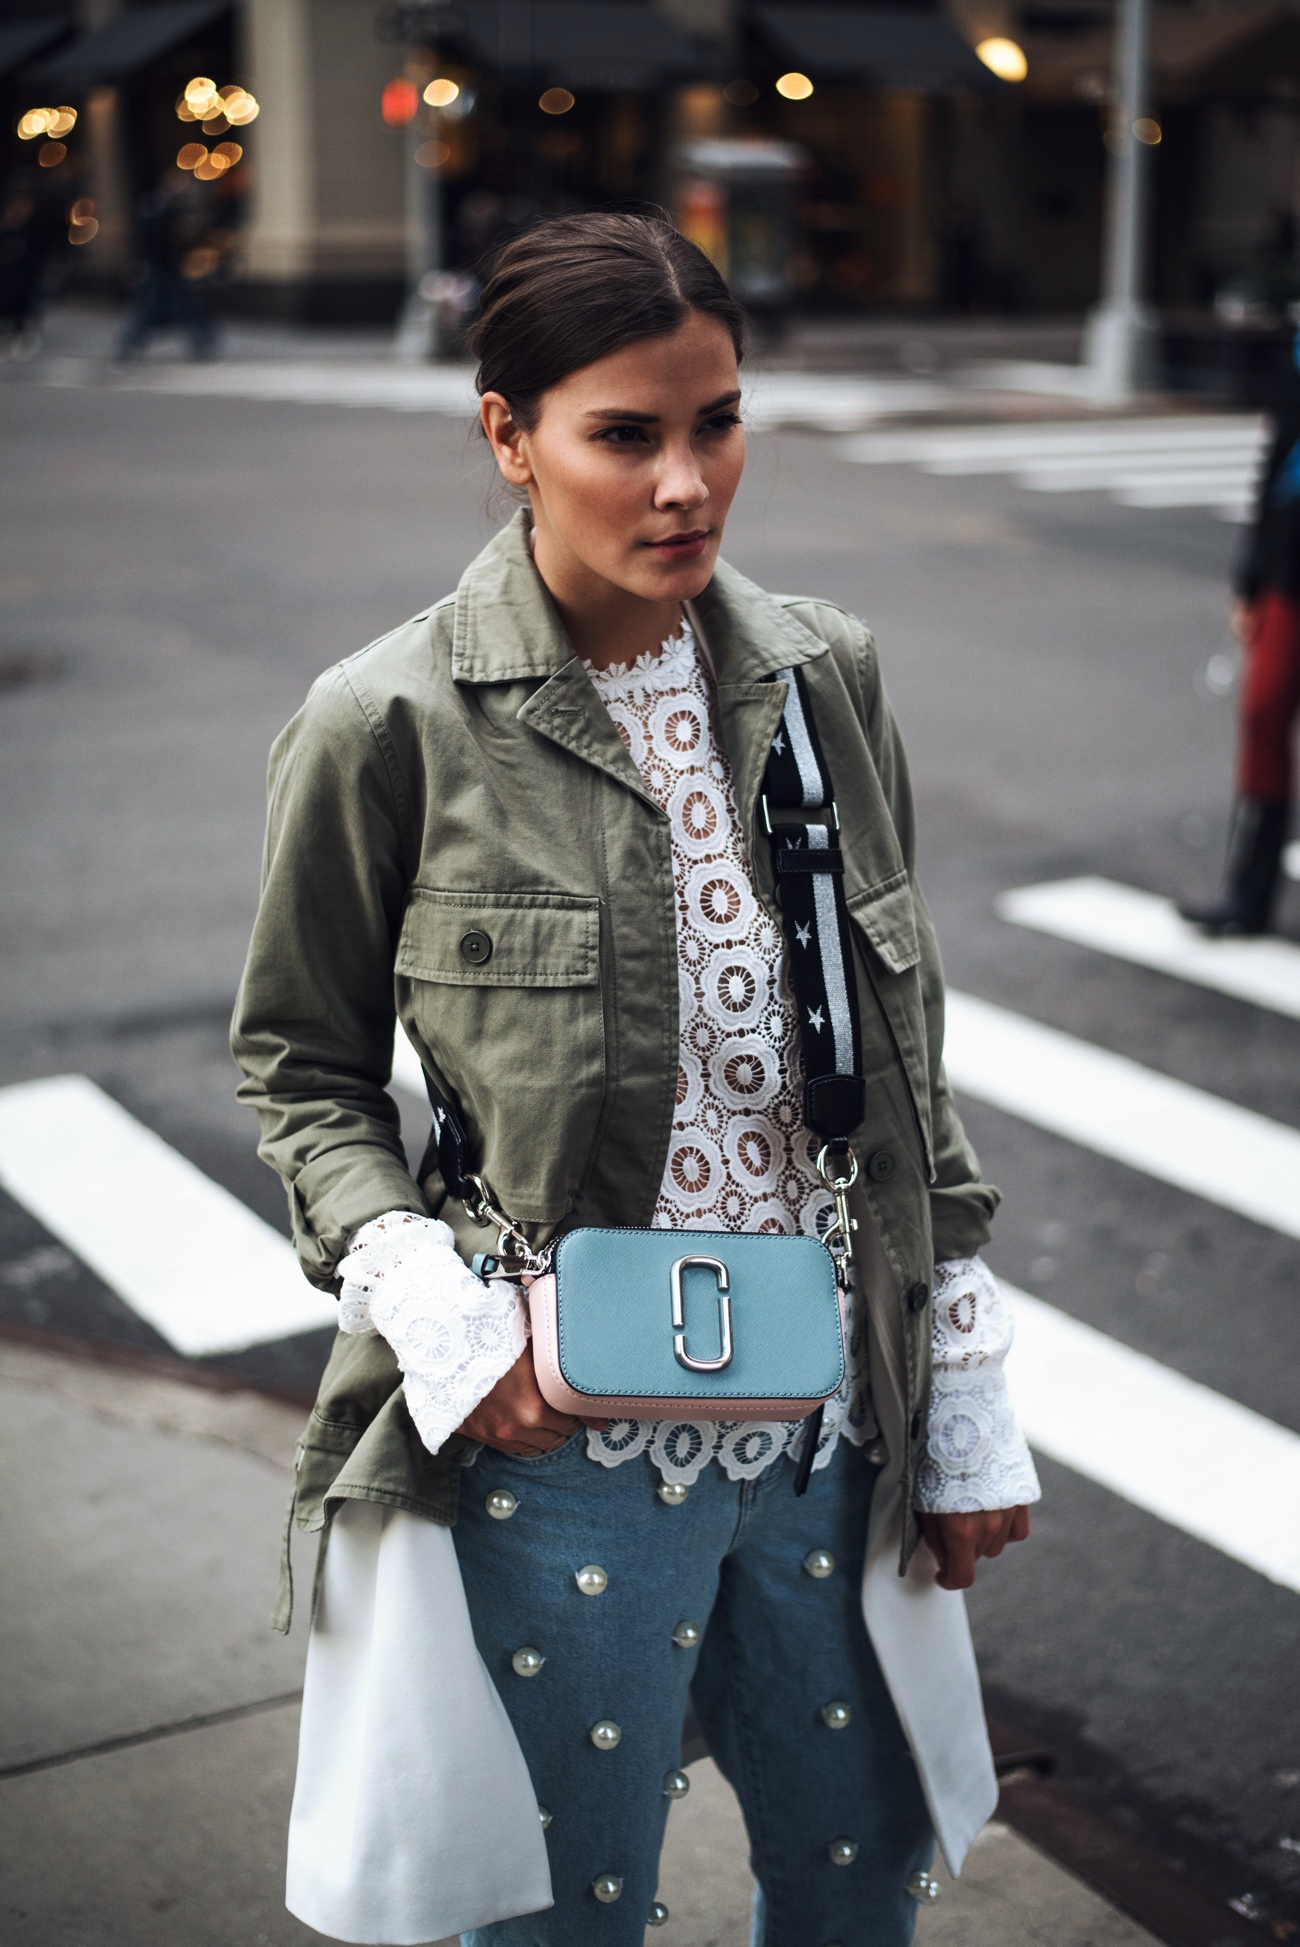 marc-jacobs-Snapshot-leather-cross-body-bag-baby-blue-star-strap-fashiioncarpet